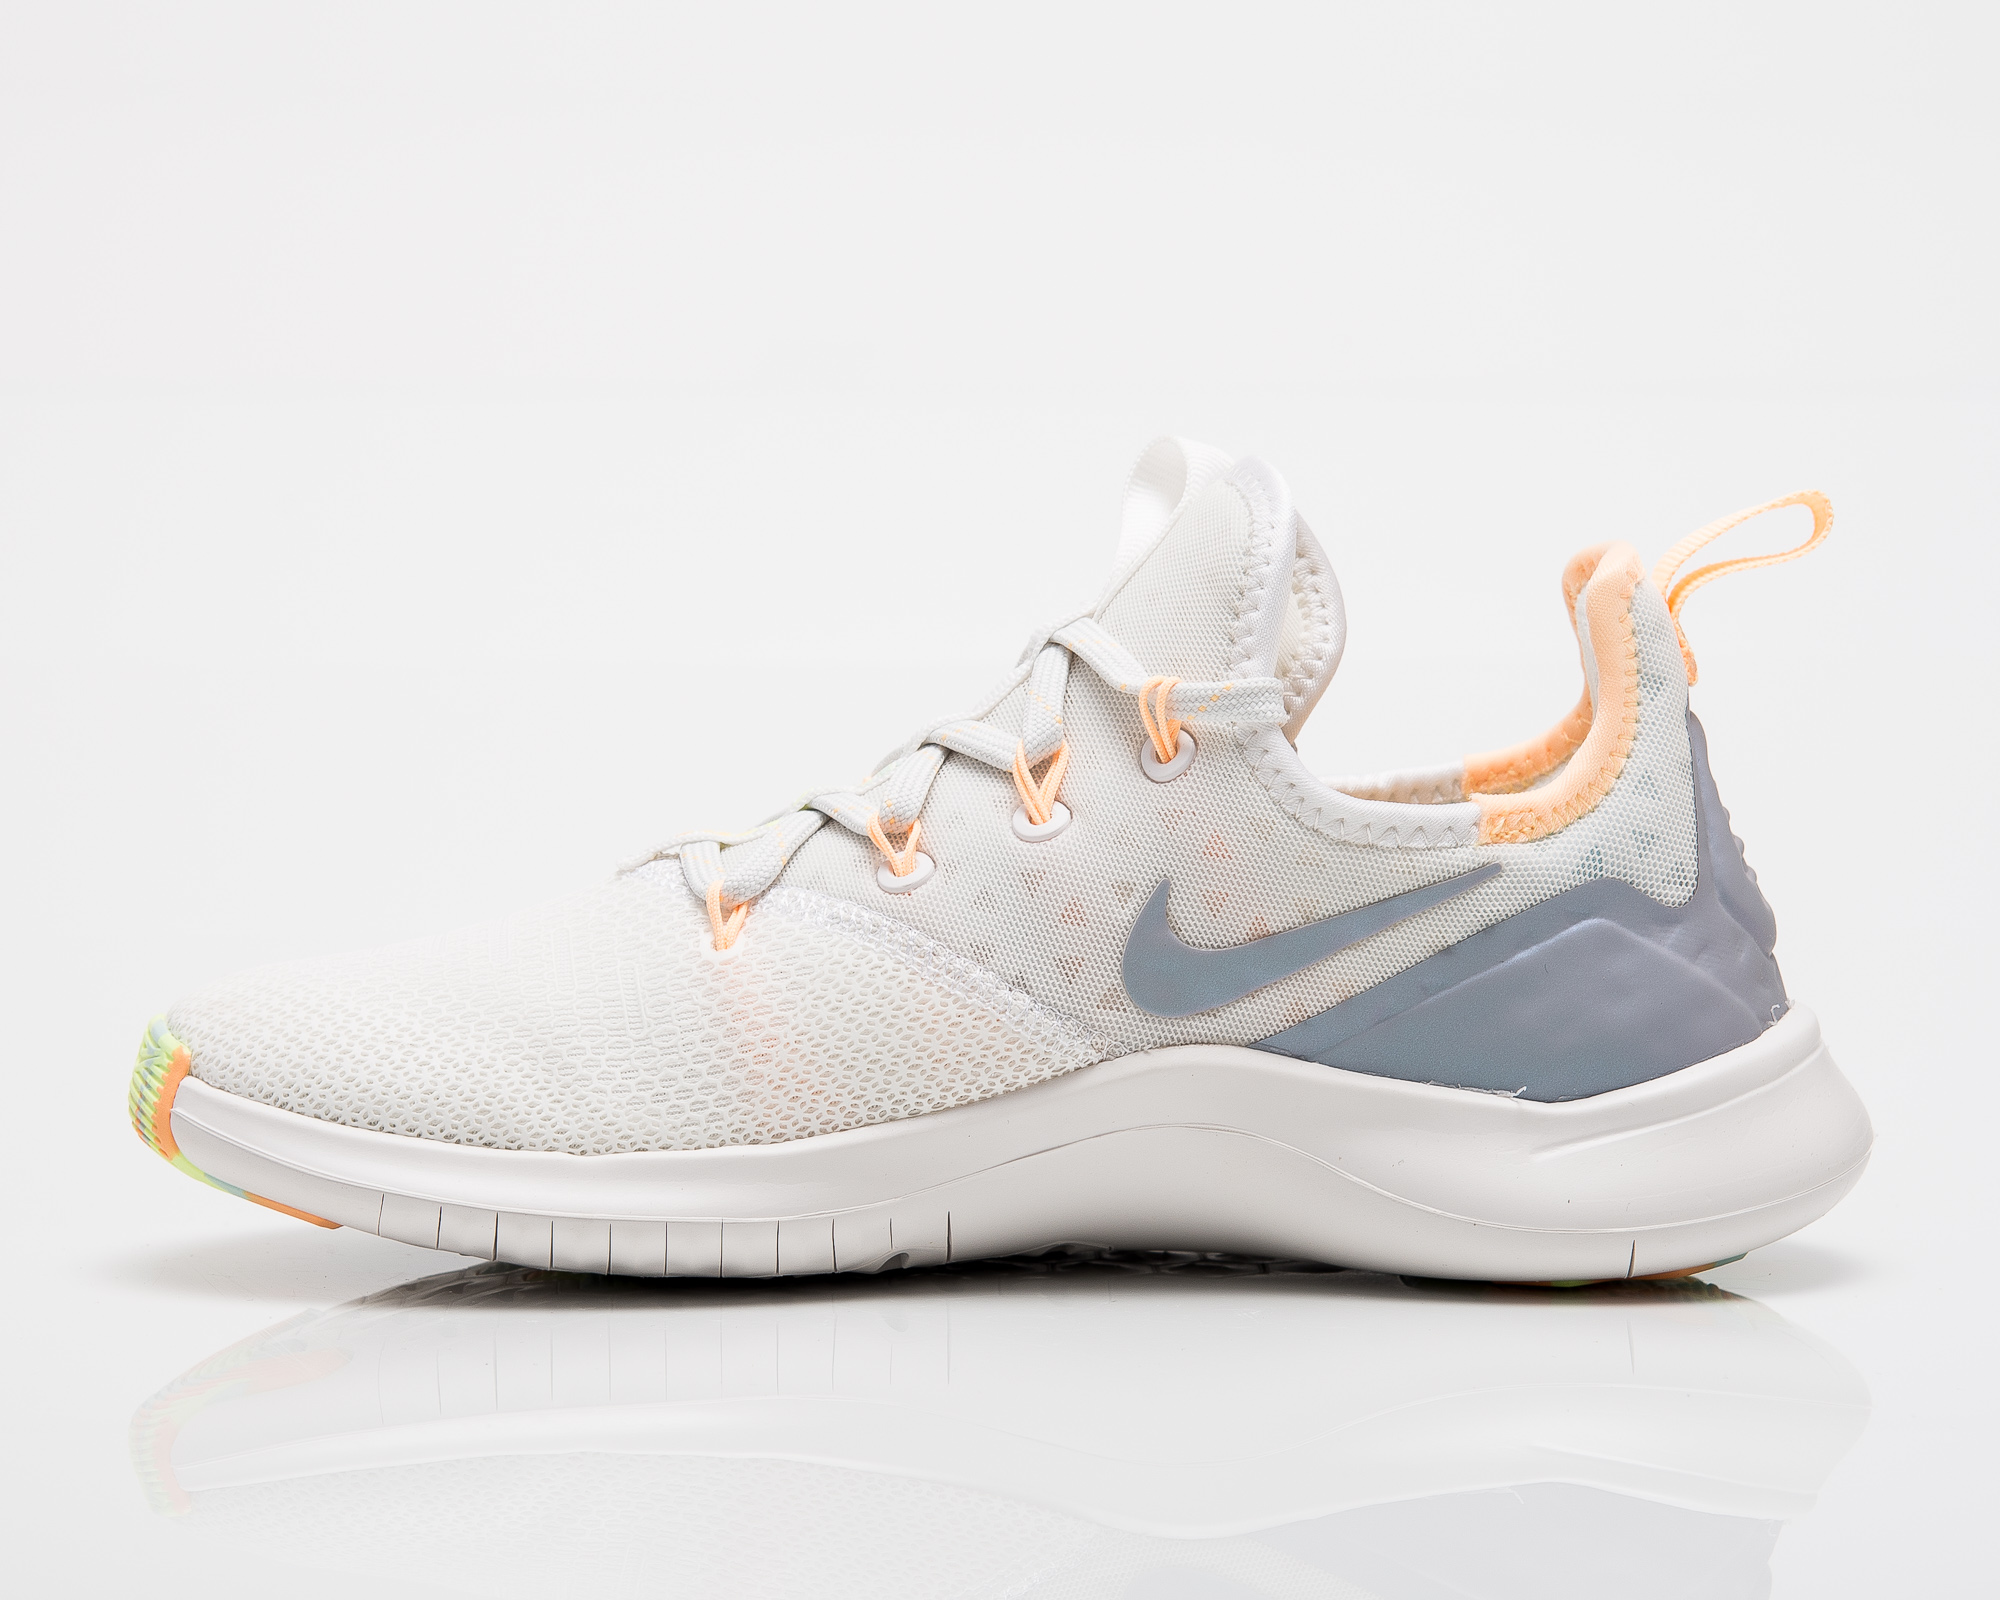 1eeaa123c9fe Nike Wmns Free TR 8 Rise - Shoes Training - Sporting goods